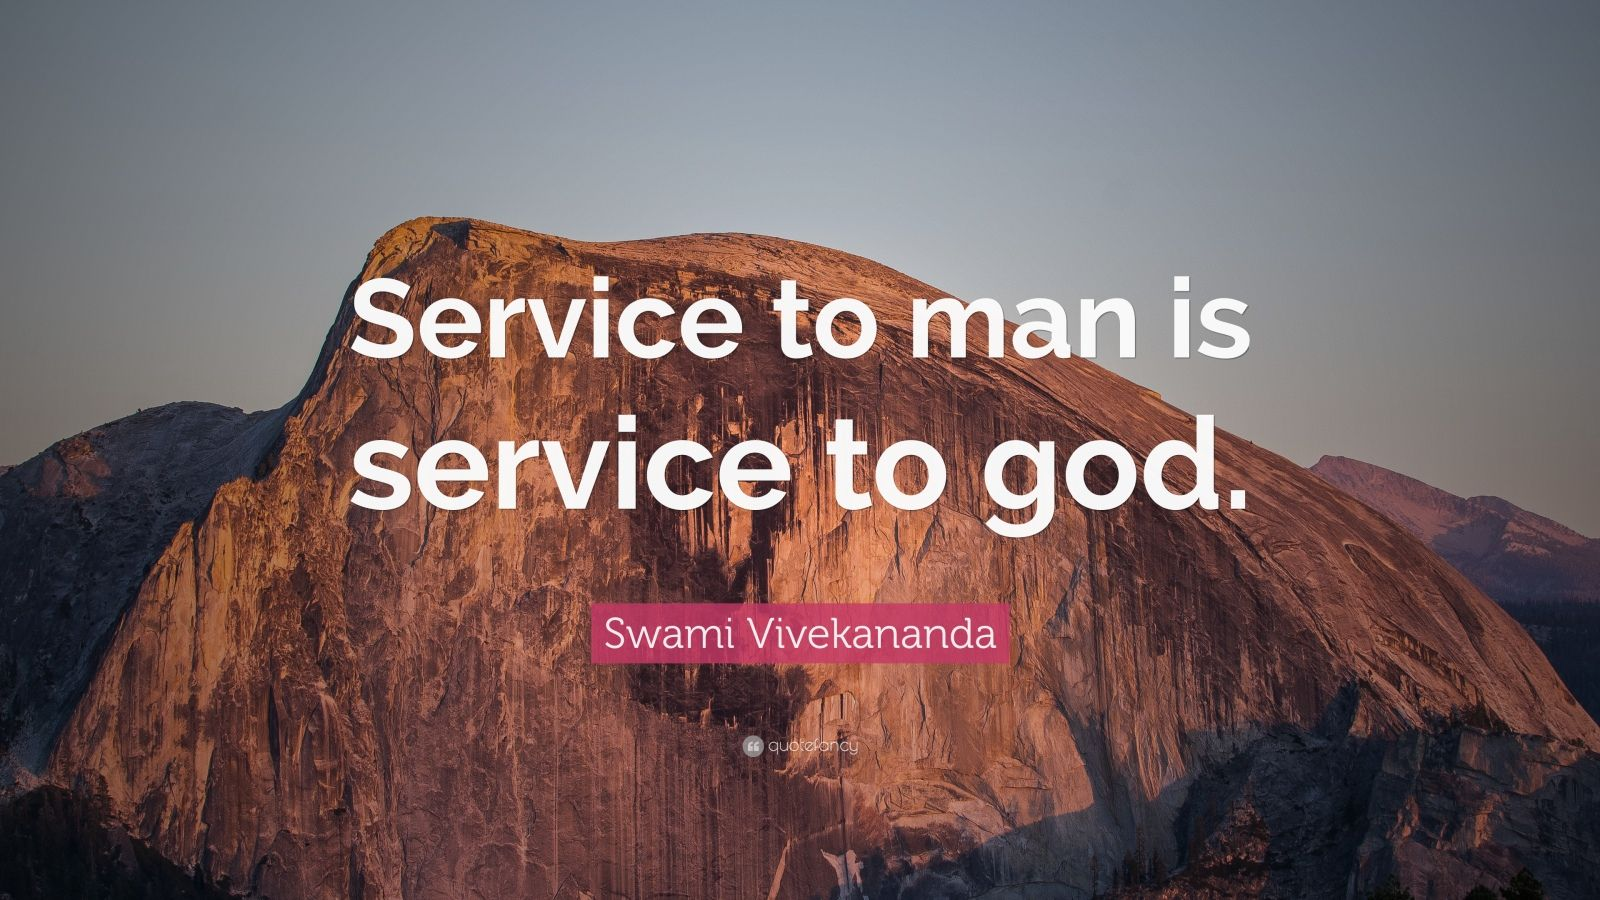 essay on service to man is service to god Many ask god to help them in exchange of some kind of offerings but serving the poor of the poorest like what madame teresa did , is indeed is the service to god some communities feed animal or birds, again thinking that god is present in these lower being as well.